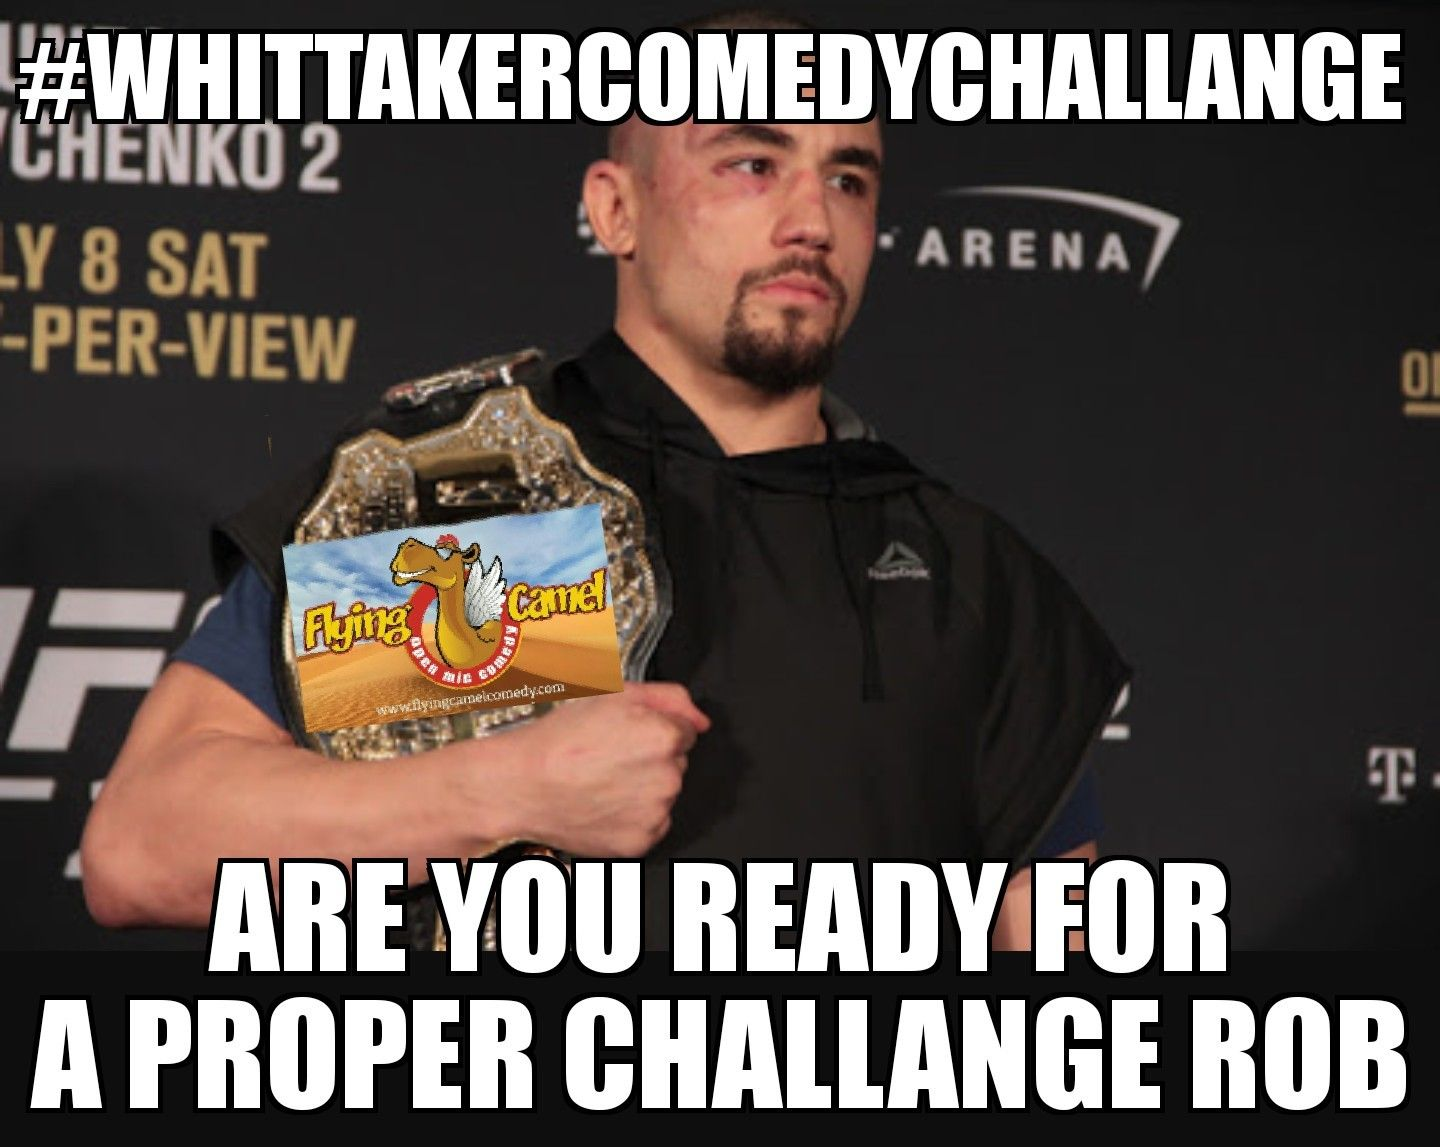 #whittakercomedychallange